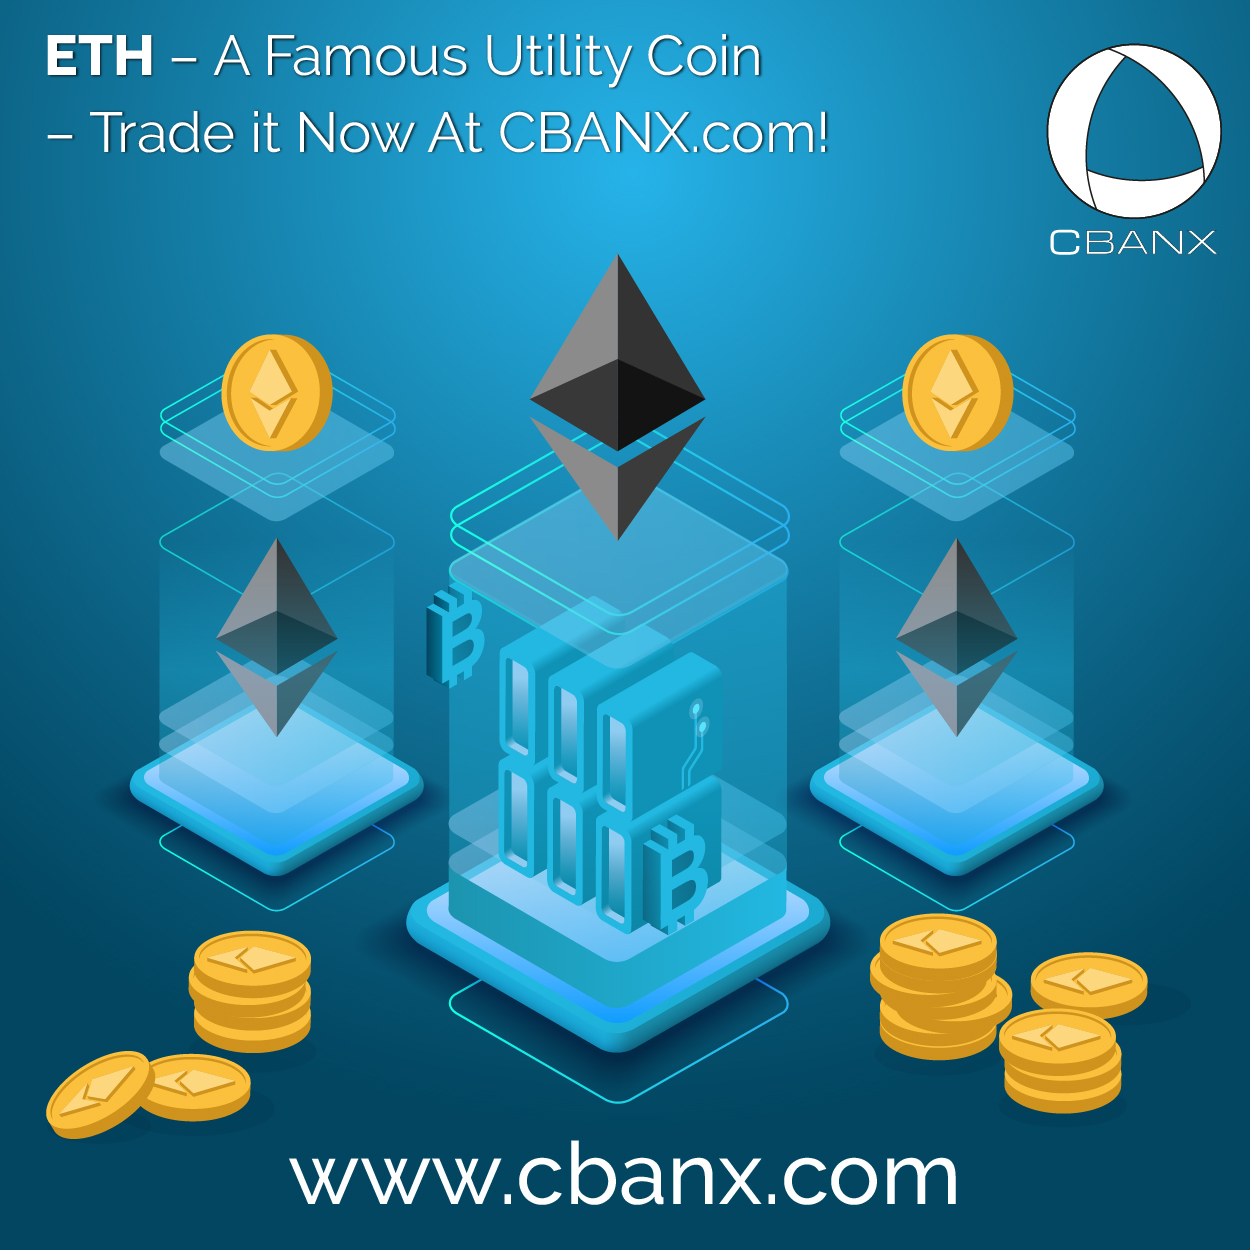 ETH – A Famous Utility Coin – Trade it Now At CBANX.com!